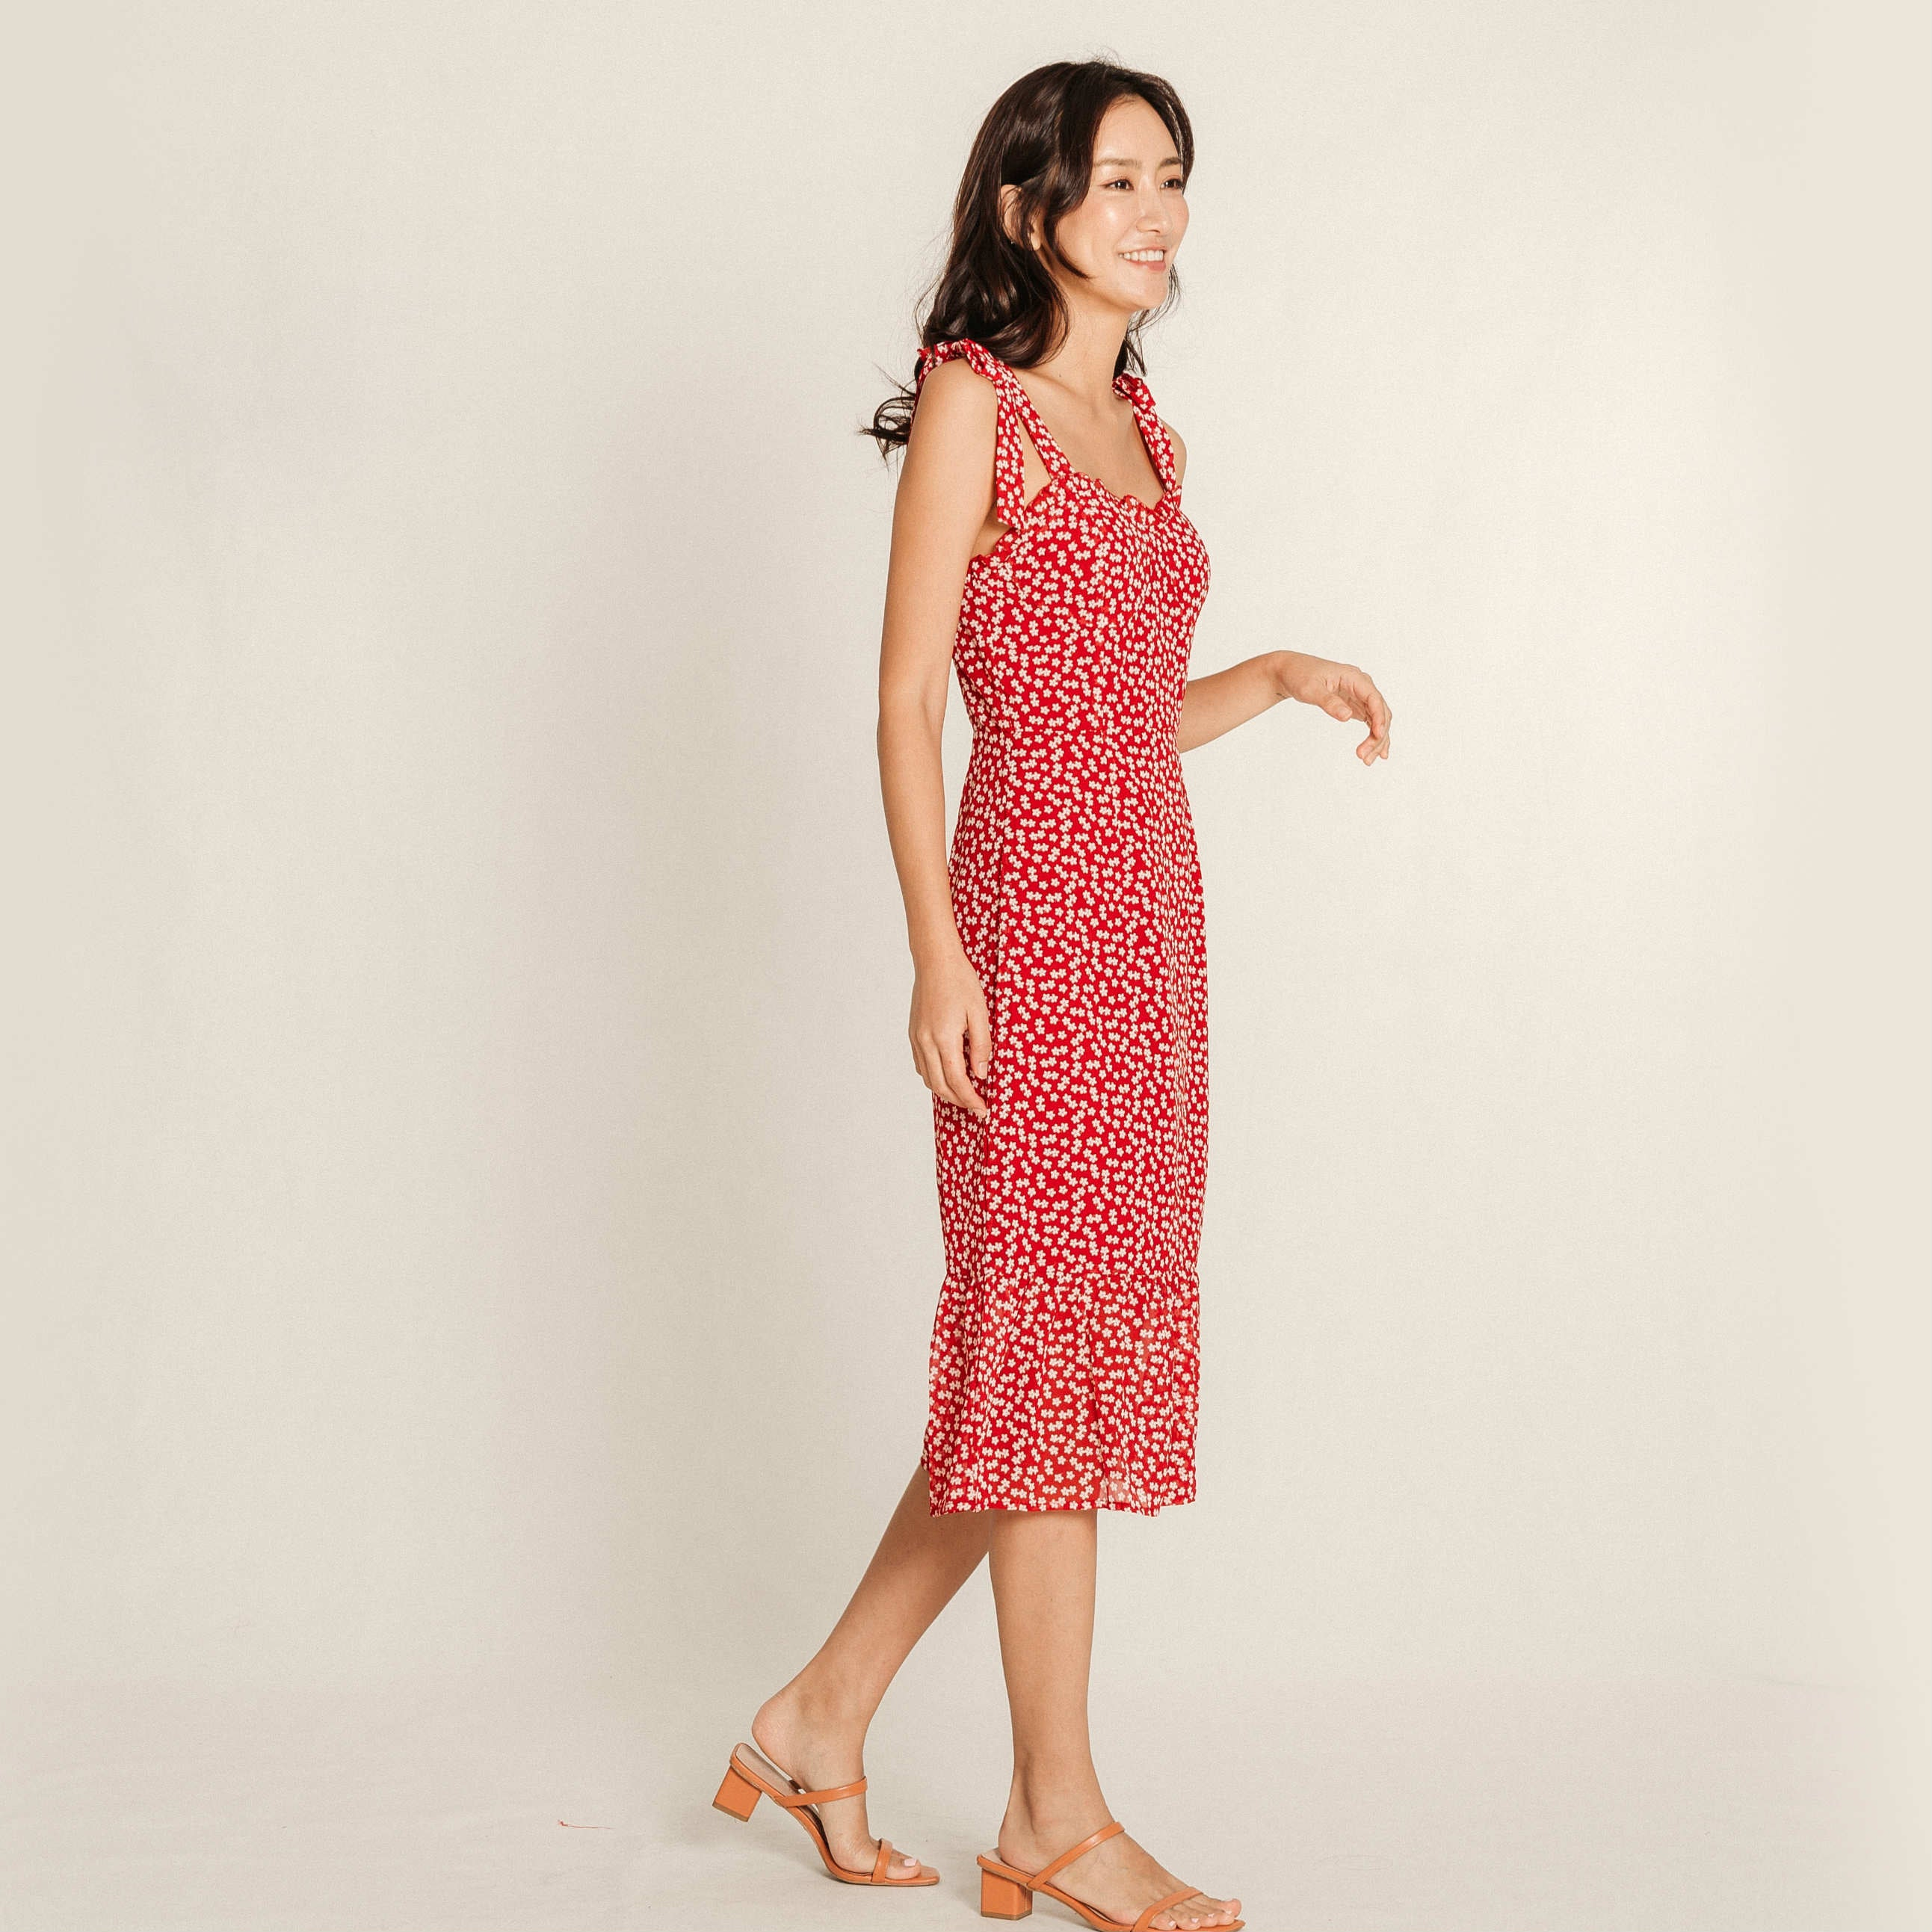 Inez Ribbon Dress - Red